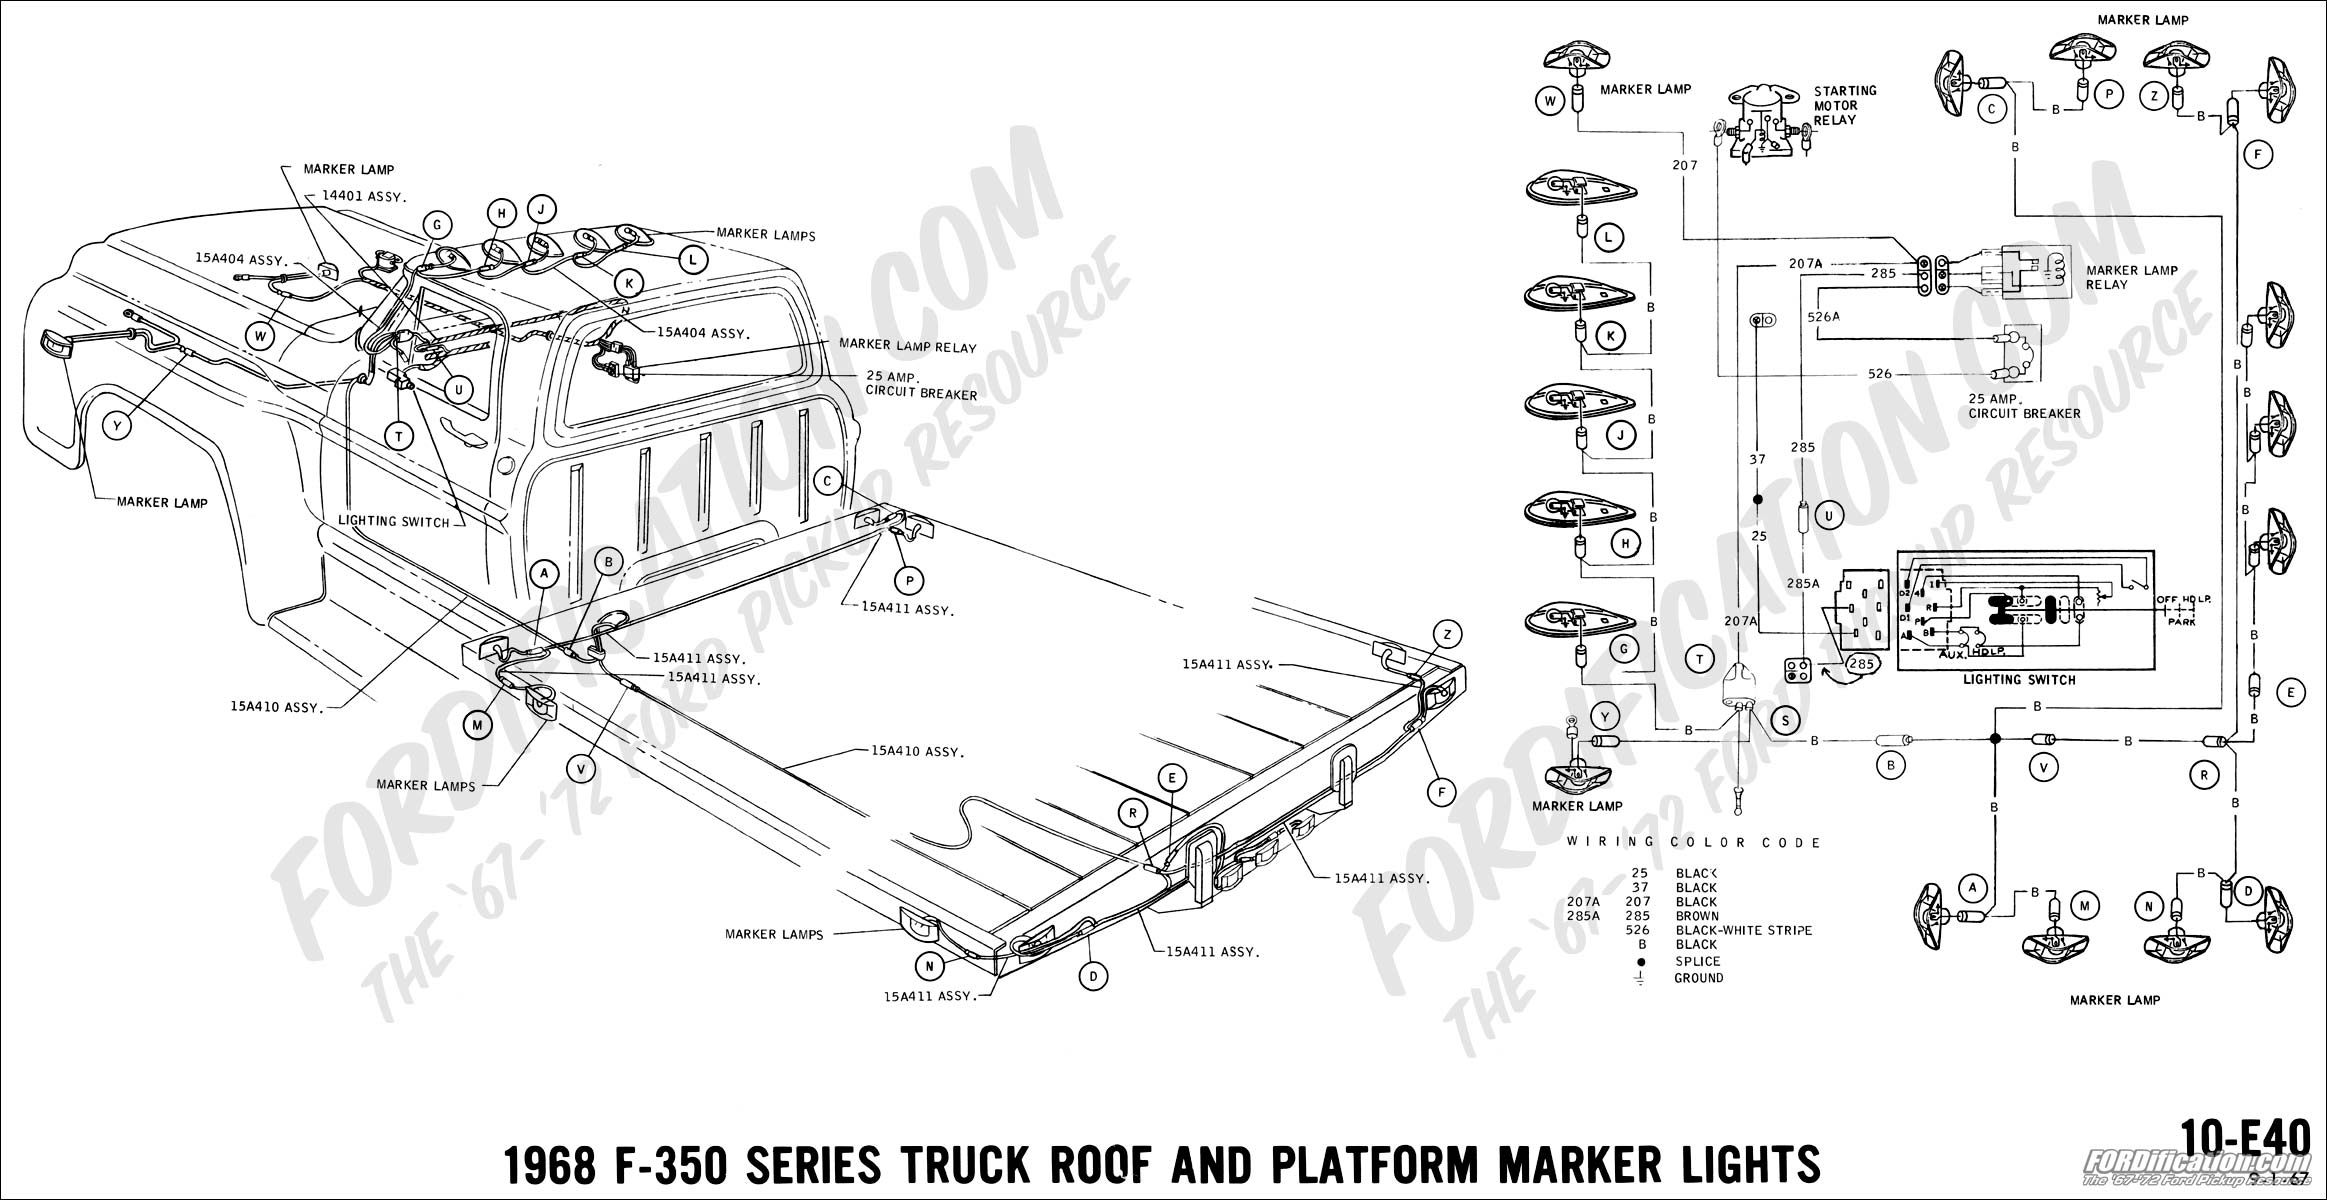 68 42 park light dash light headlight problem the fordification com 2005 F350 Fuse Panel Diagram at mifinder.co